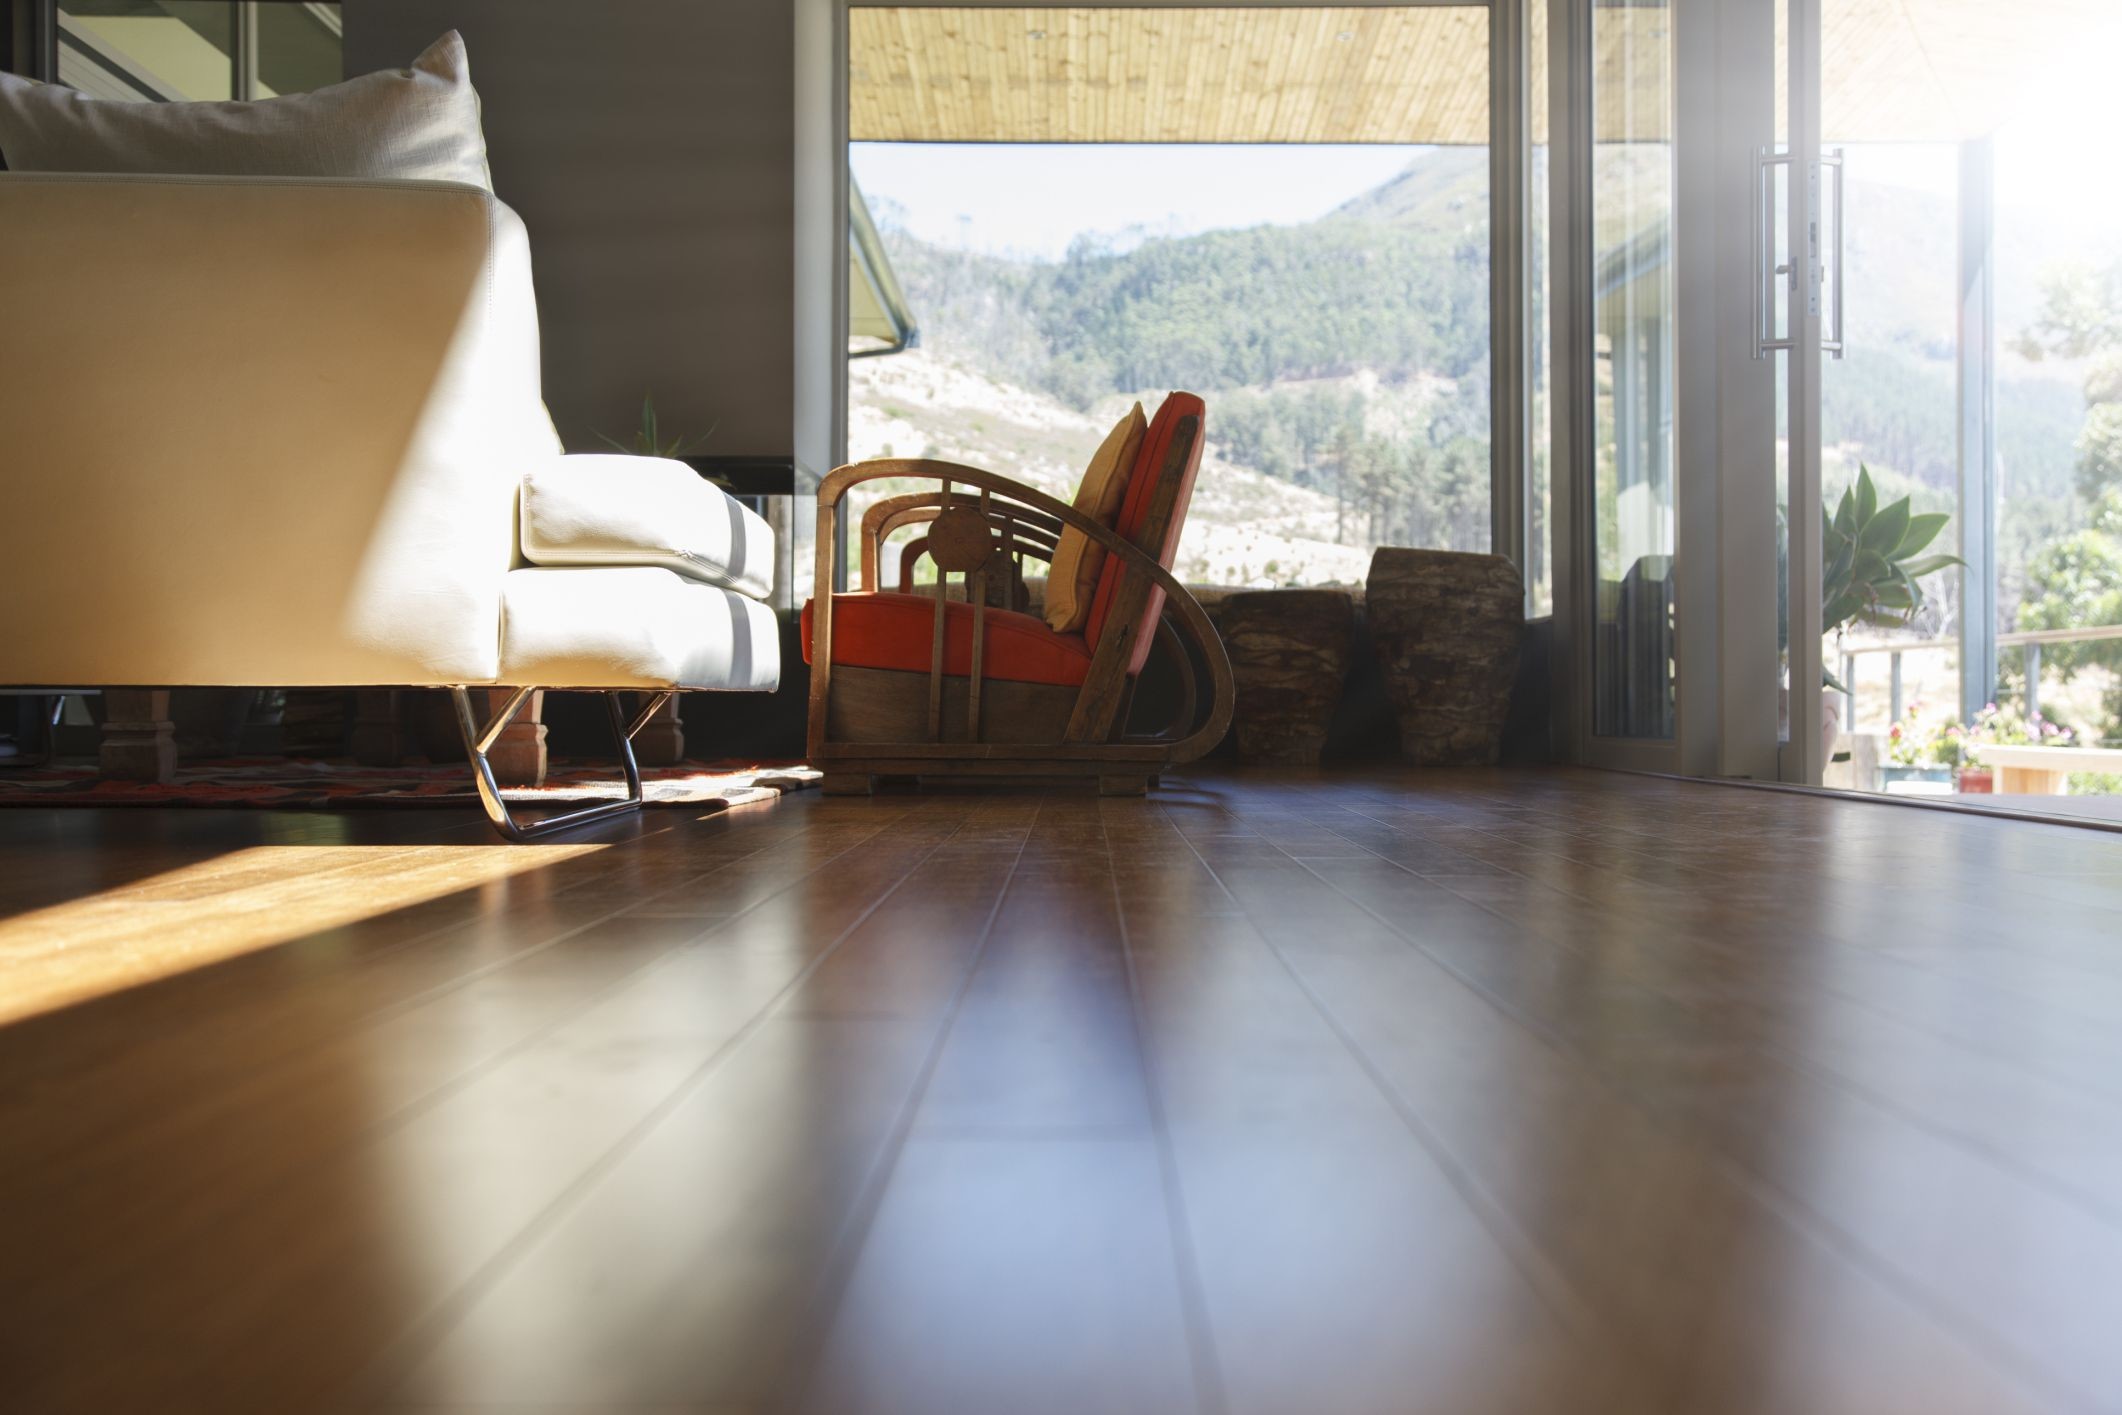 hardwood floor vs carpet price of floating floors basics types and pros and cons in exotic hardwood flooring 525439899 56a49d3a3df78cf77283453d